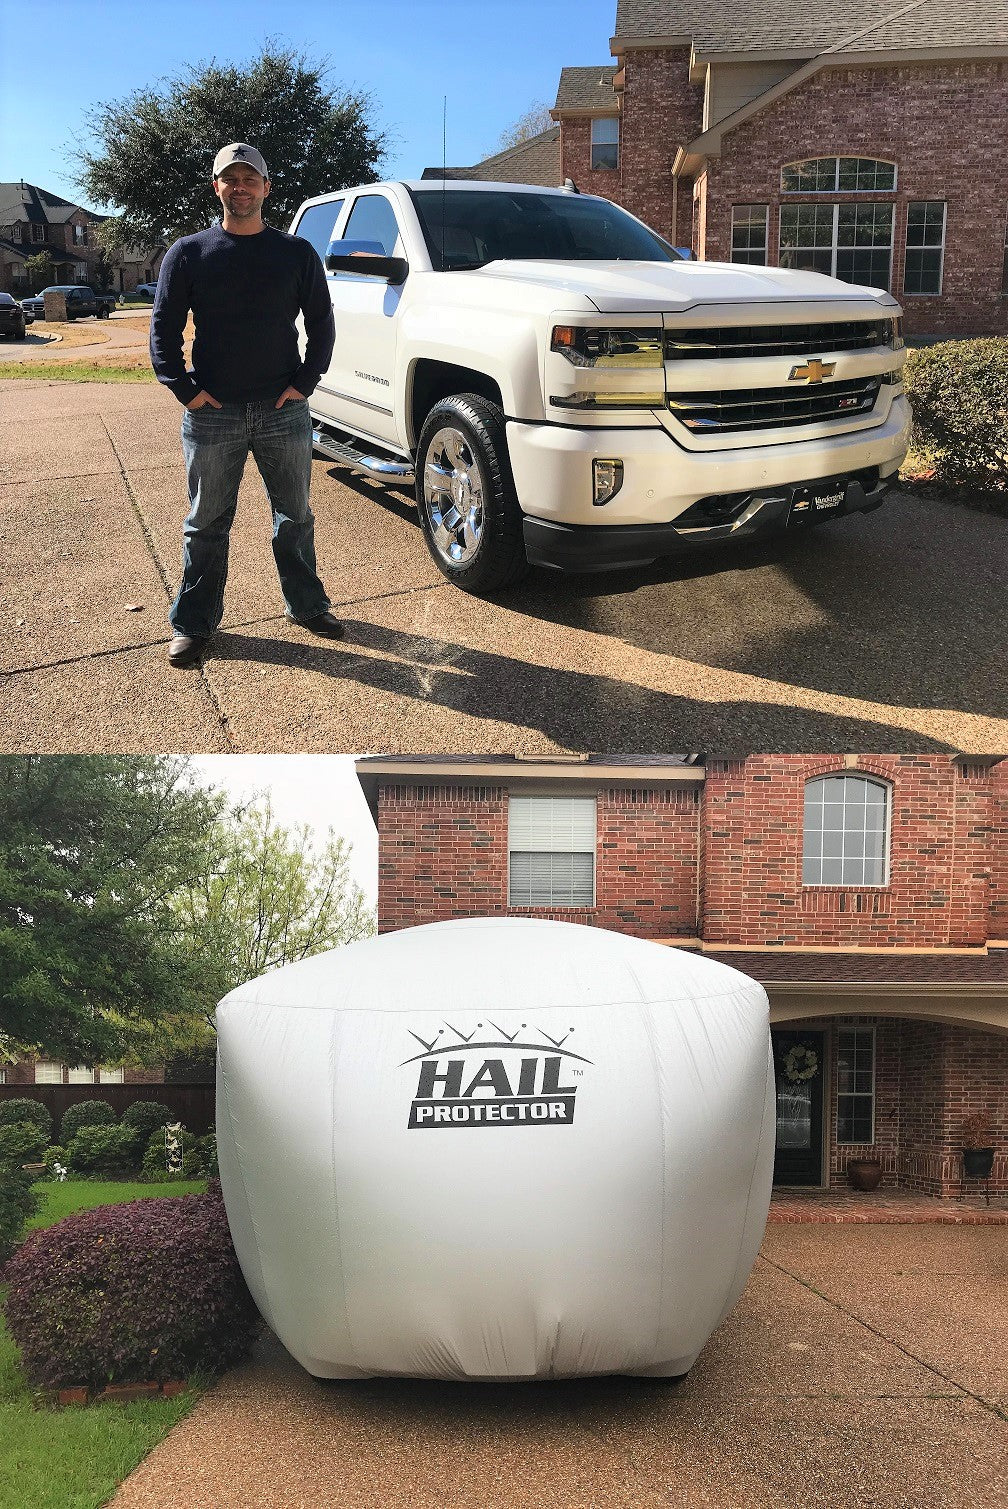 SUV2 HAIL PROTECTOR Truck and SUV (198 to 233 inches)